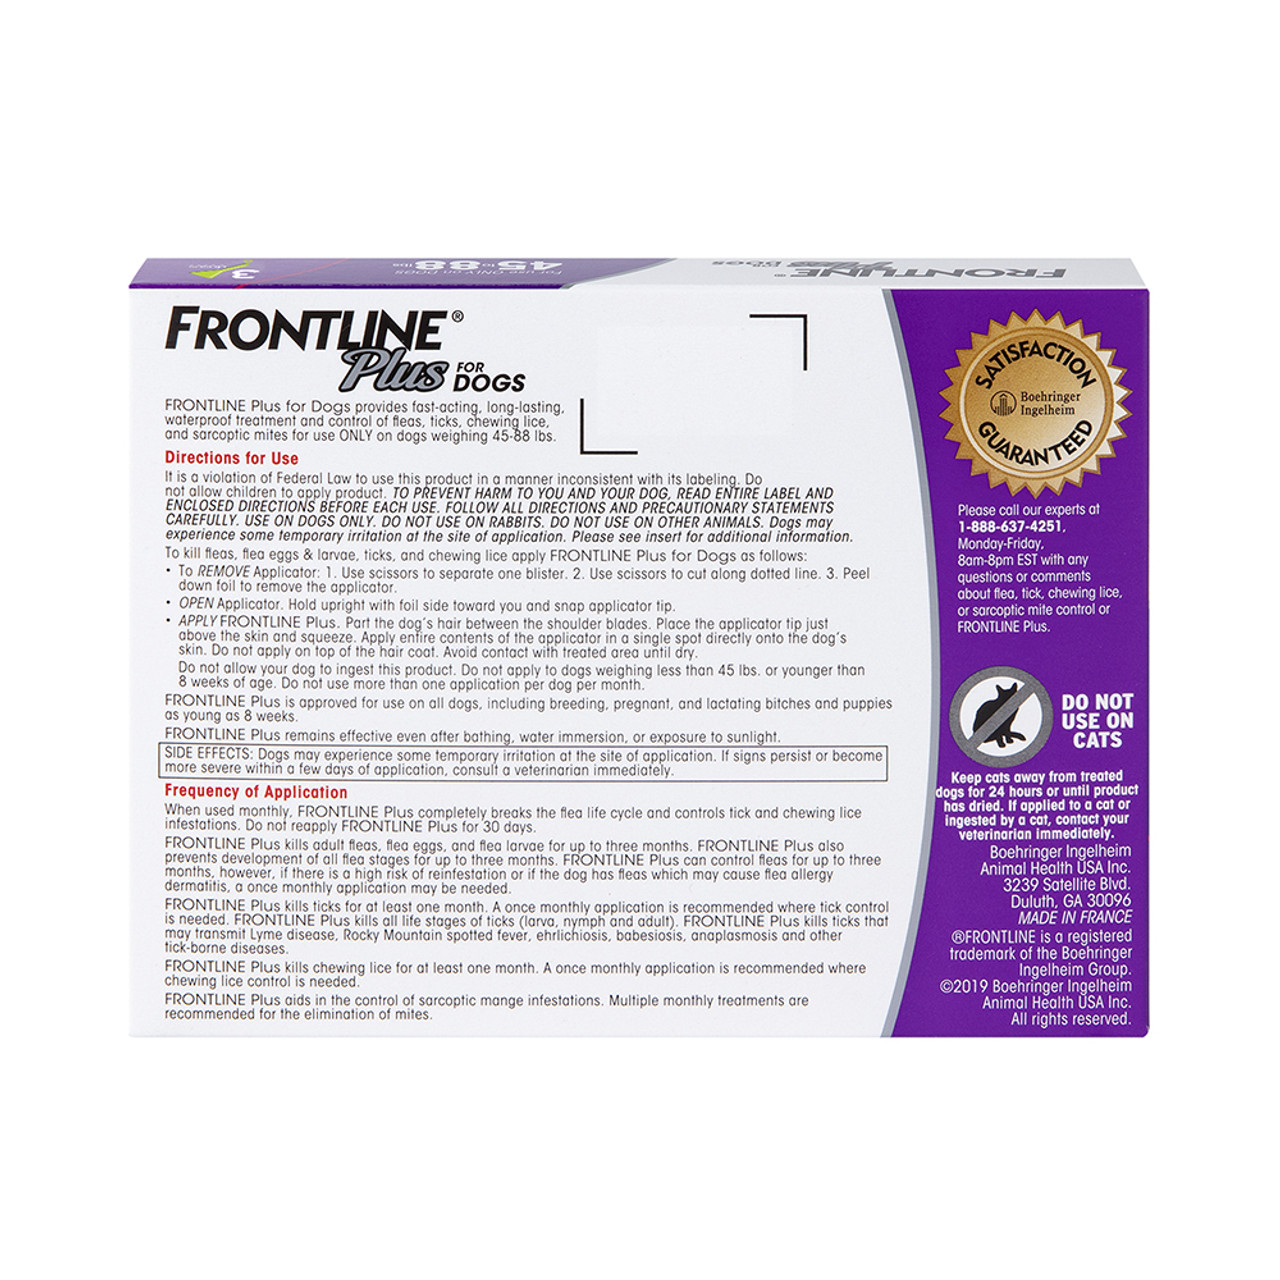 Frontline Plus Flea & Tick Treatment for Dogs & Puppies (45-88 lbs.) - Back